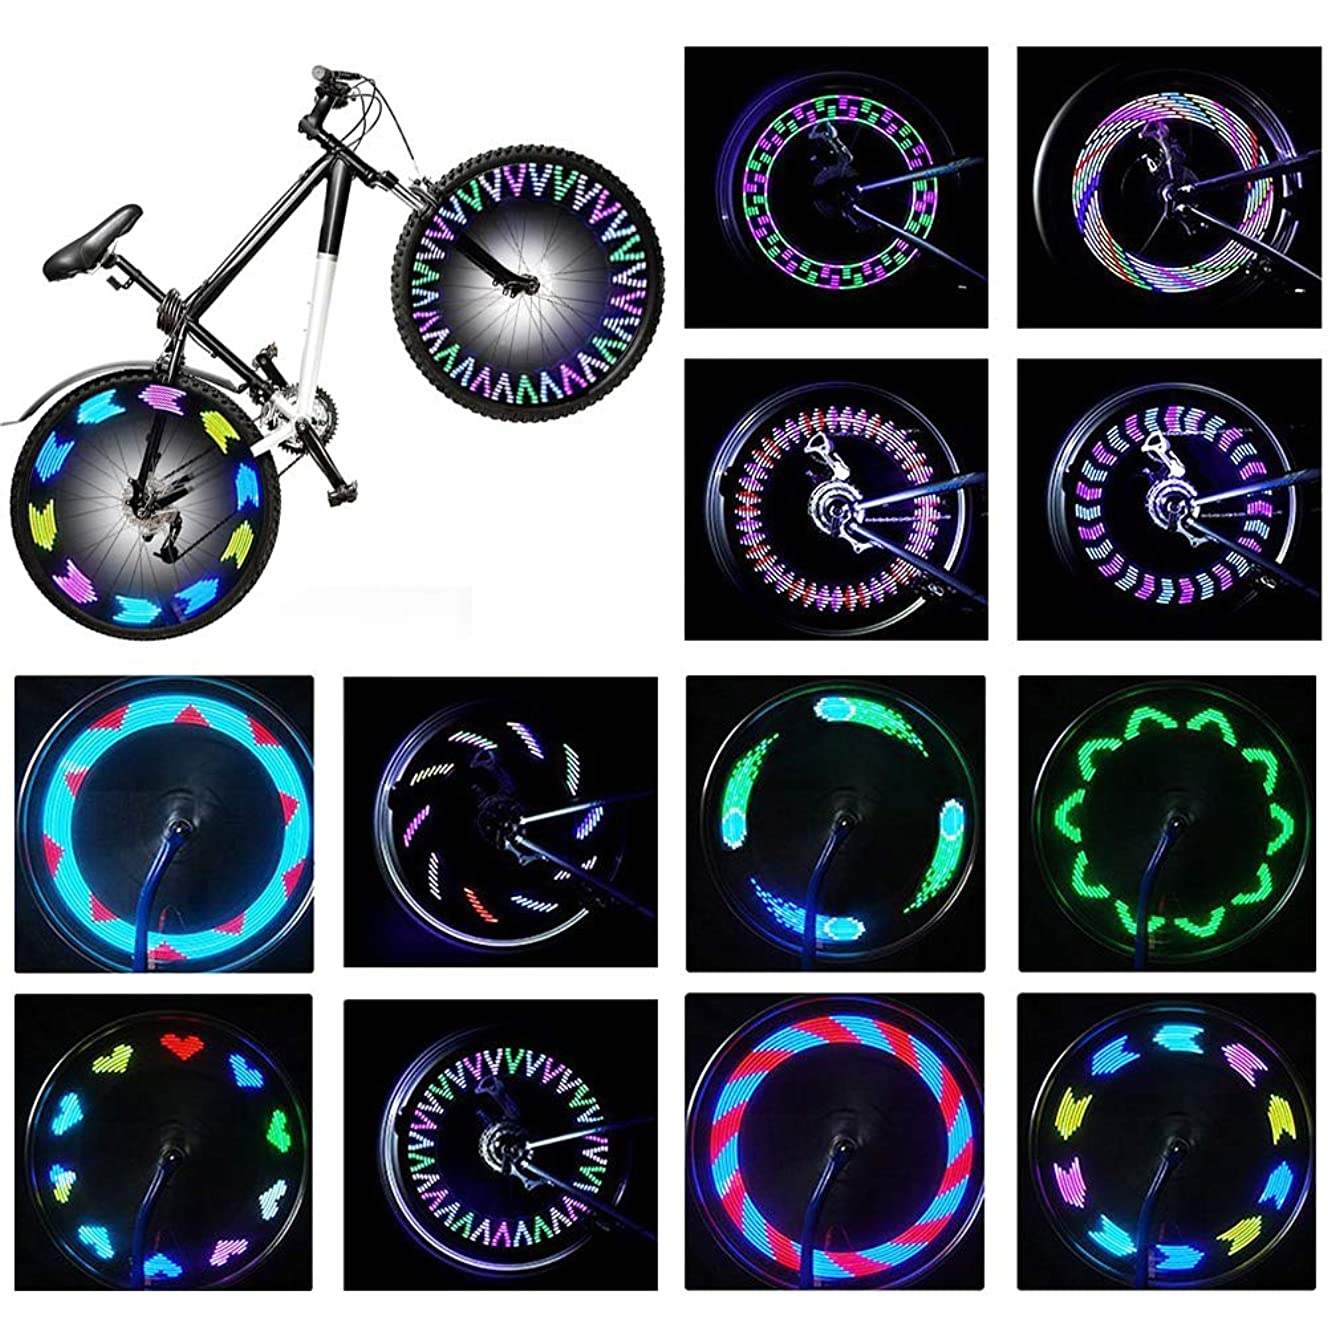 Rottay Bike Wheel Lights, Bicycle Wheel Lights Waterproof RGB Ultra Bright Spoke Lights 14-LED 30pcs Changes Patterns -Safety Cool Bike Tire Accessories Kids Adults-Visible from All Angle